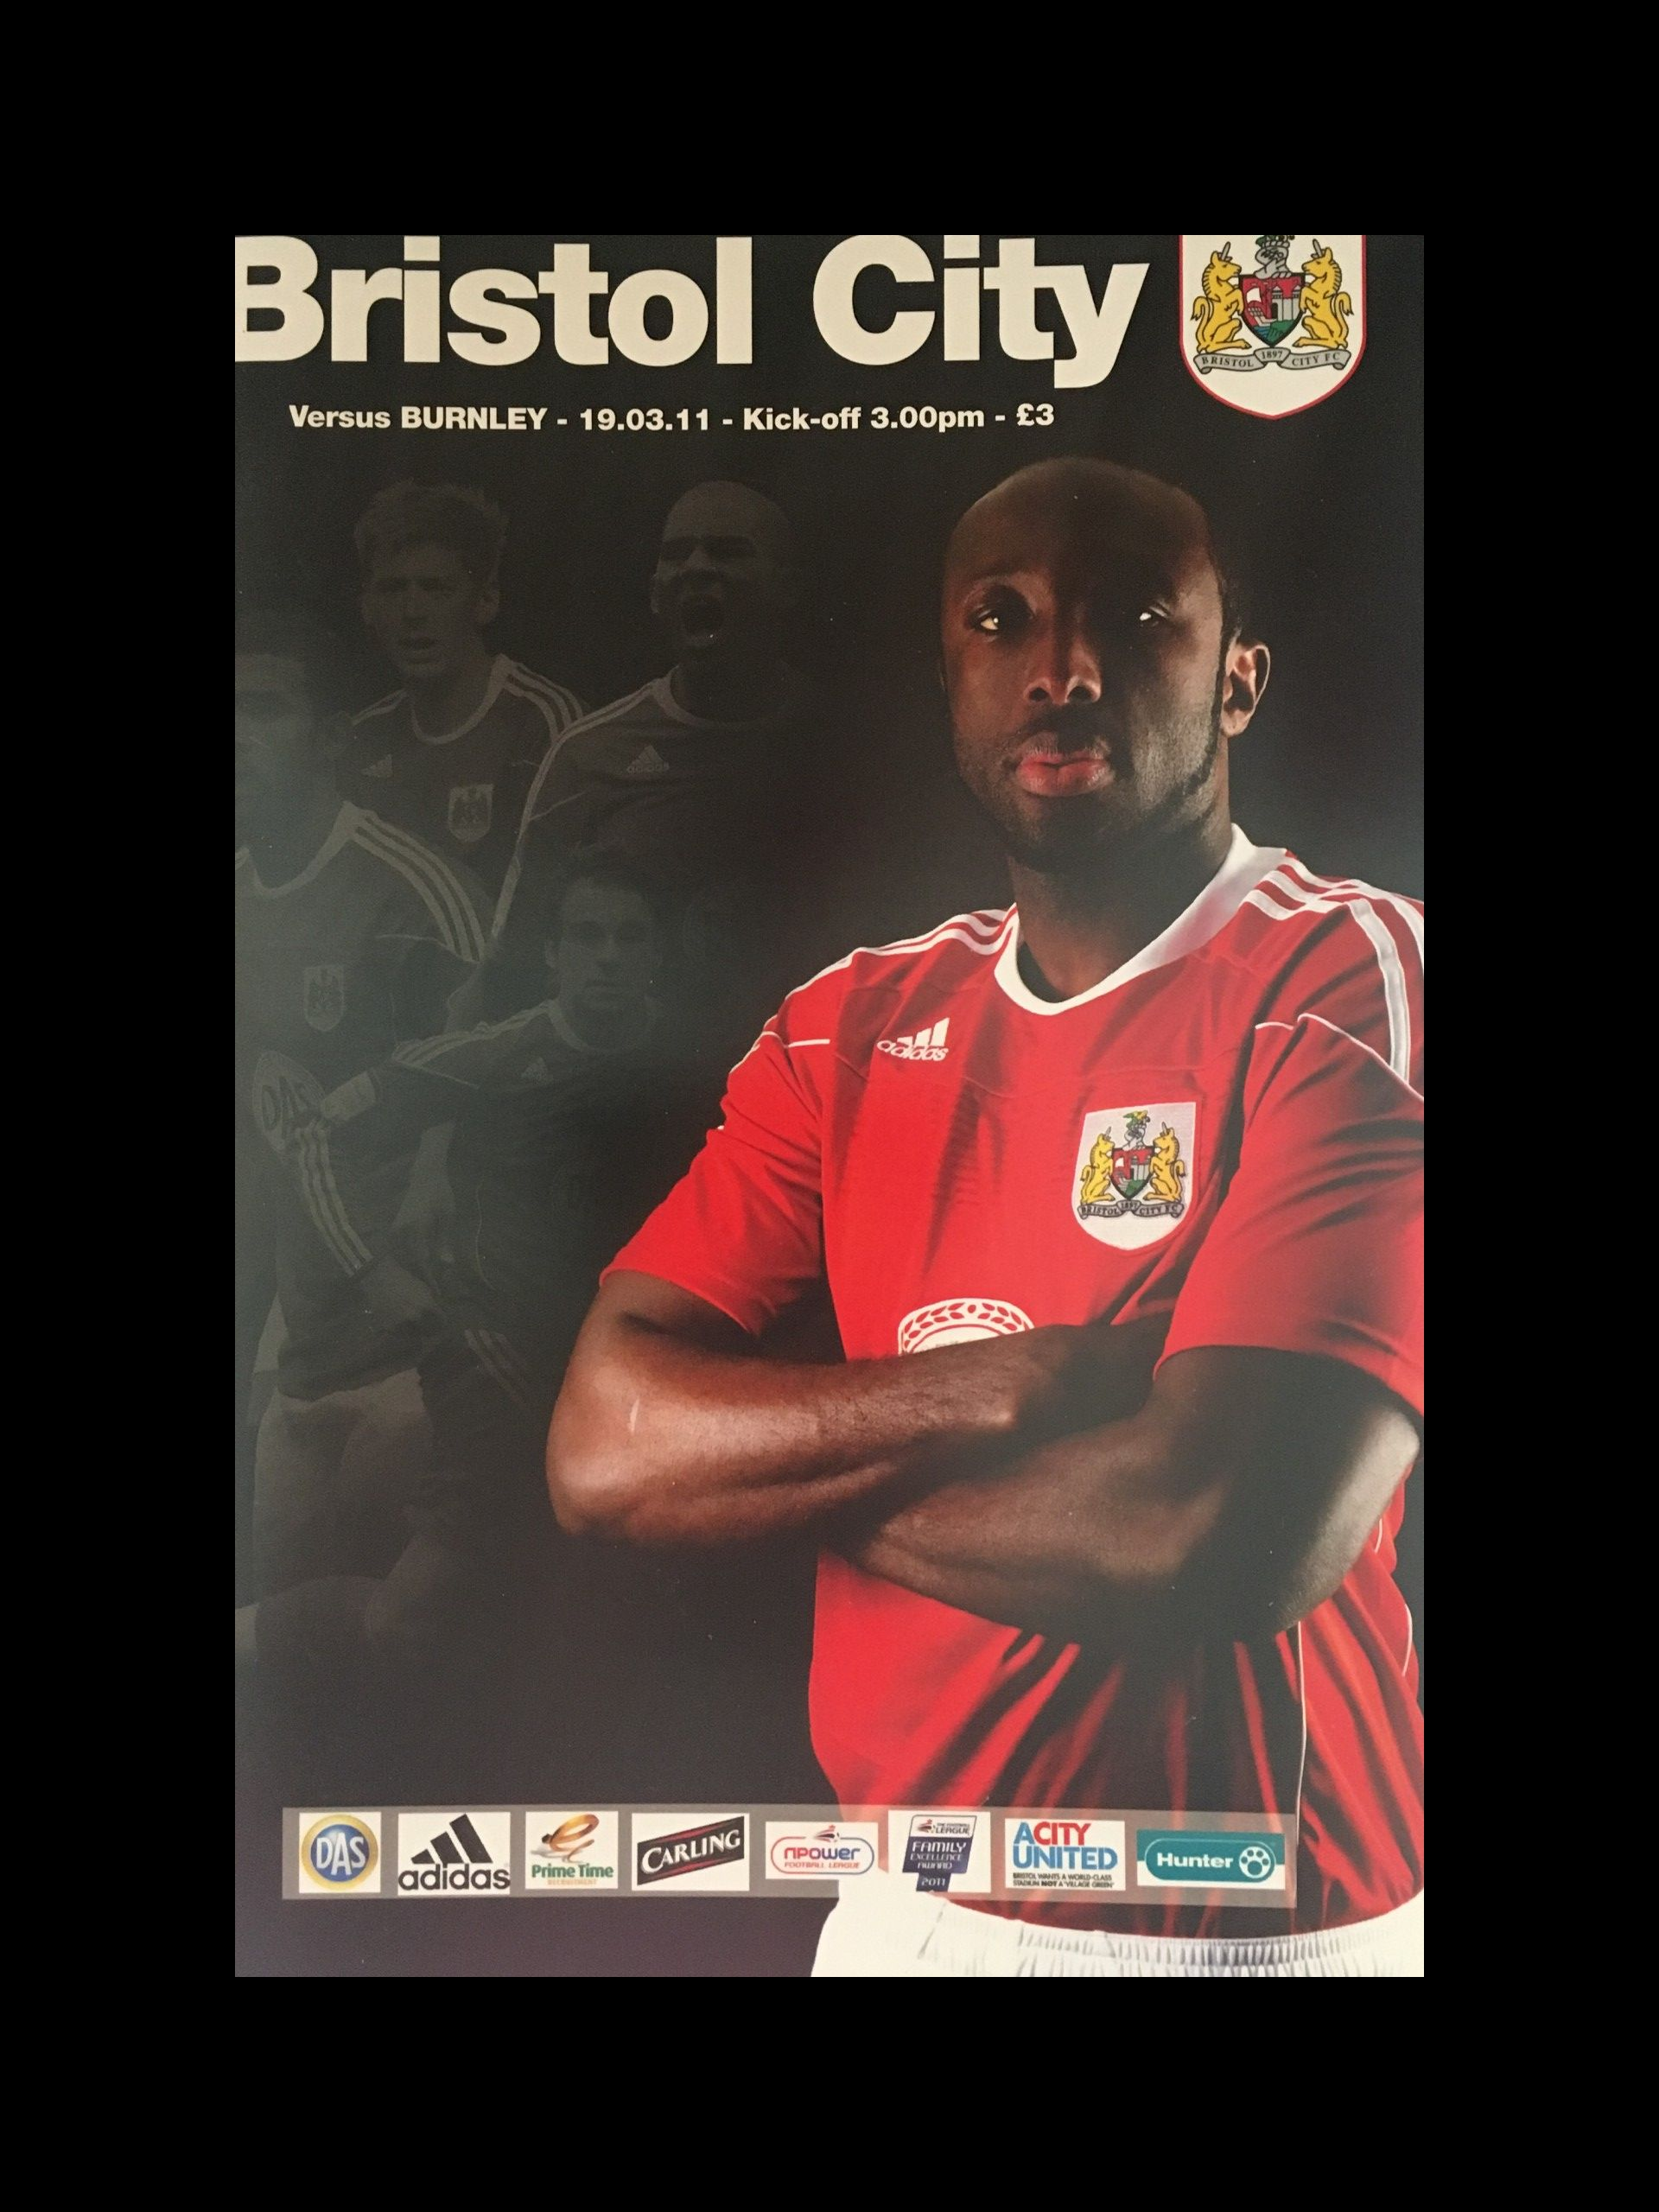 Bristol City v Burnley 19-03-2011 Programme